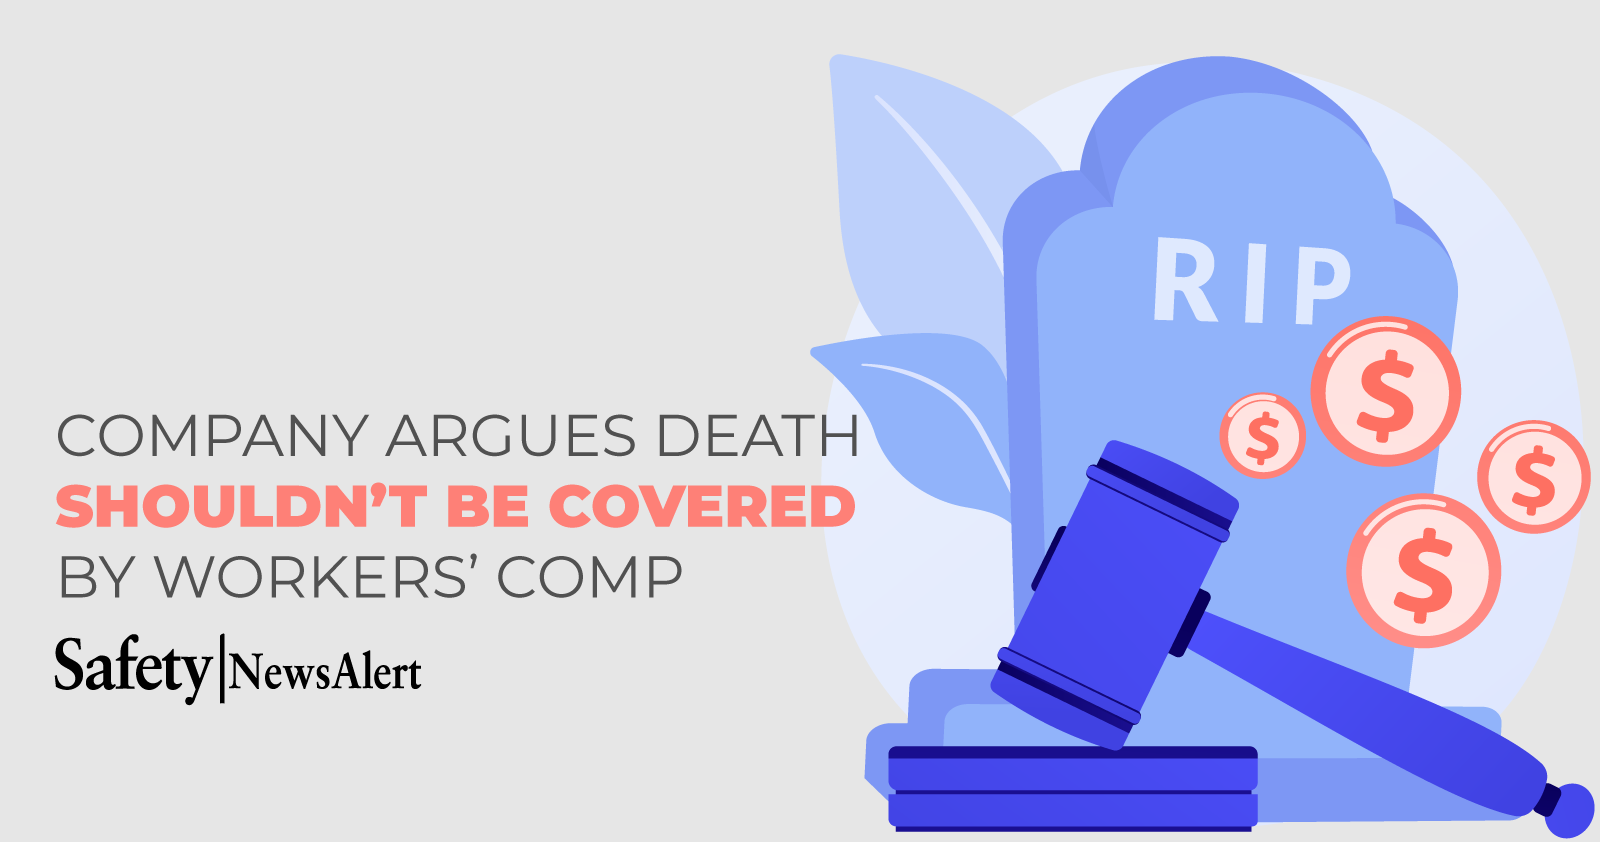 company argues death should not be covered by workers comp